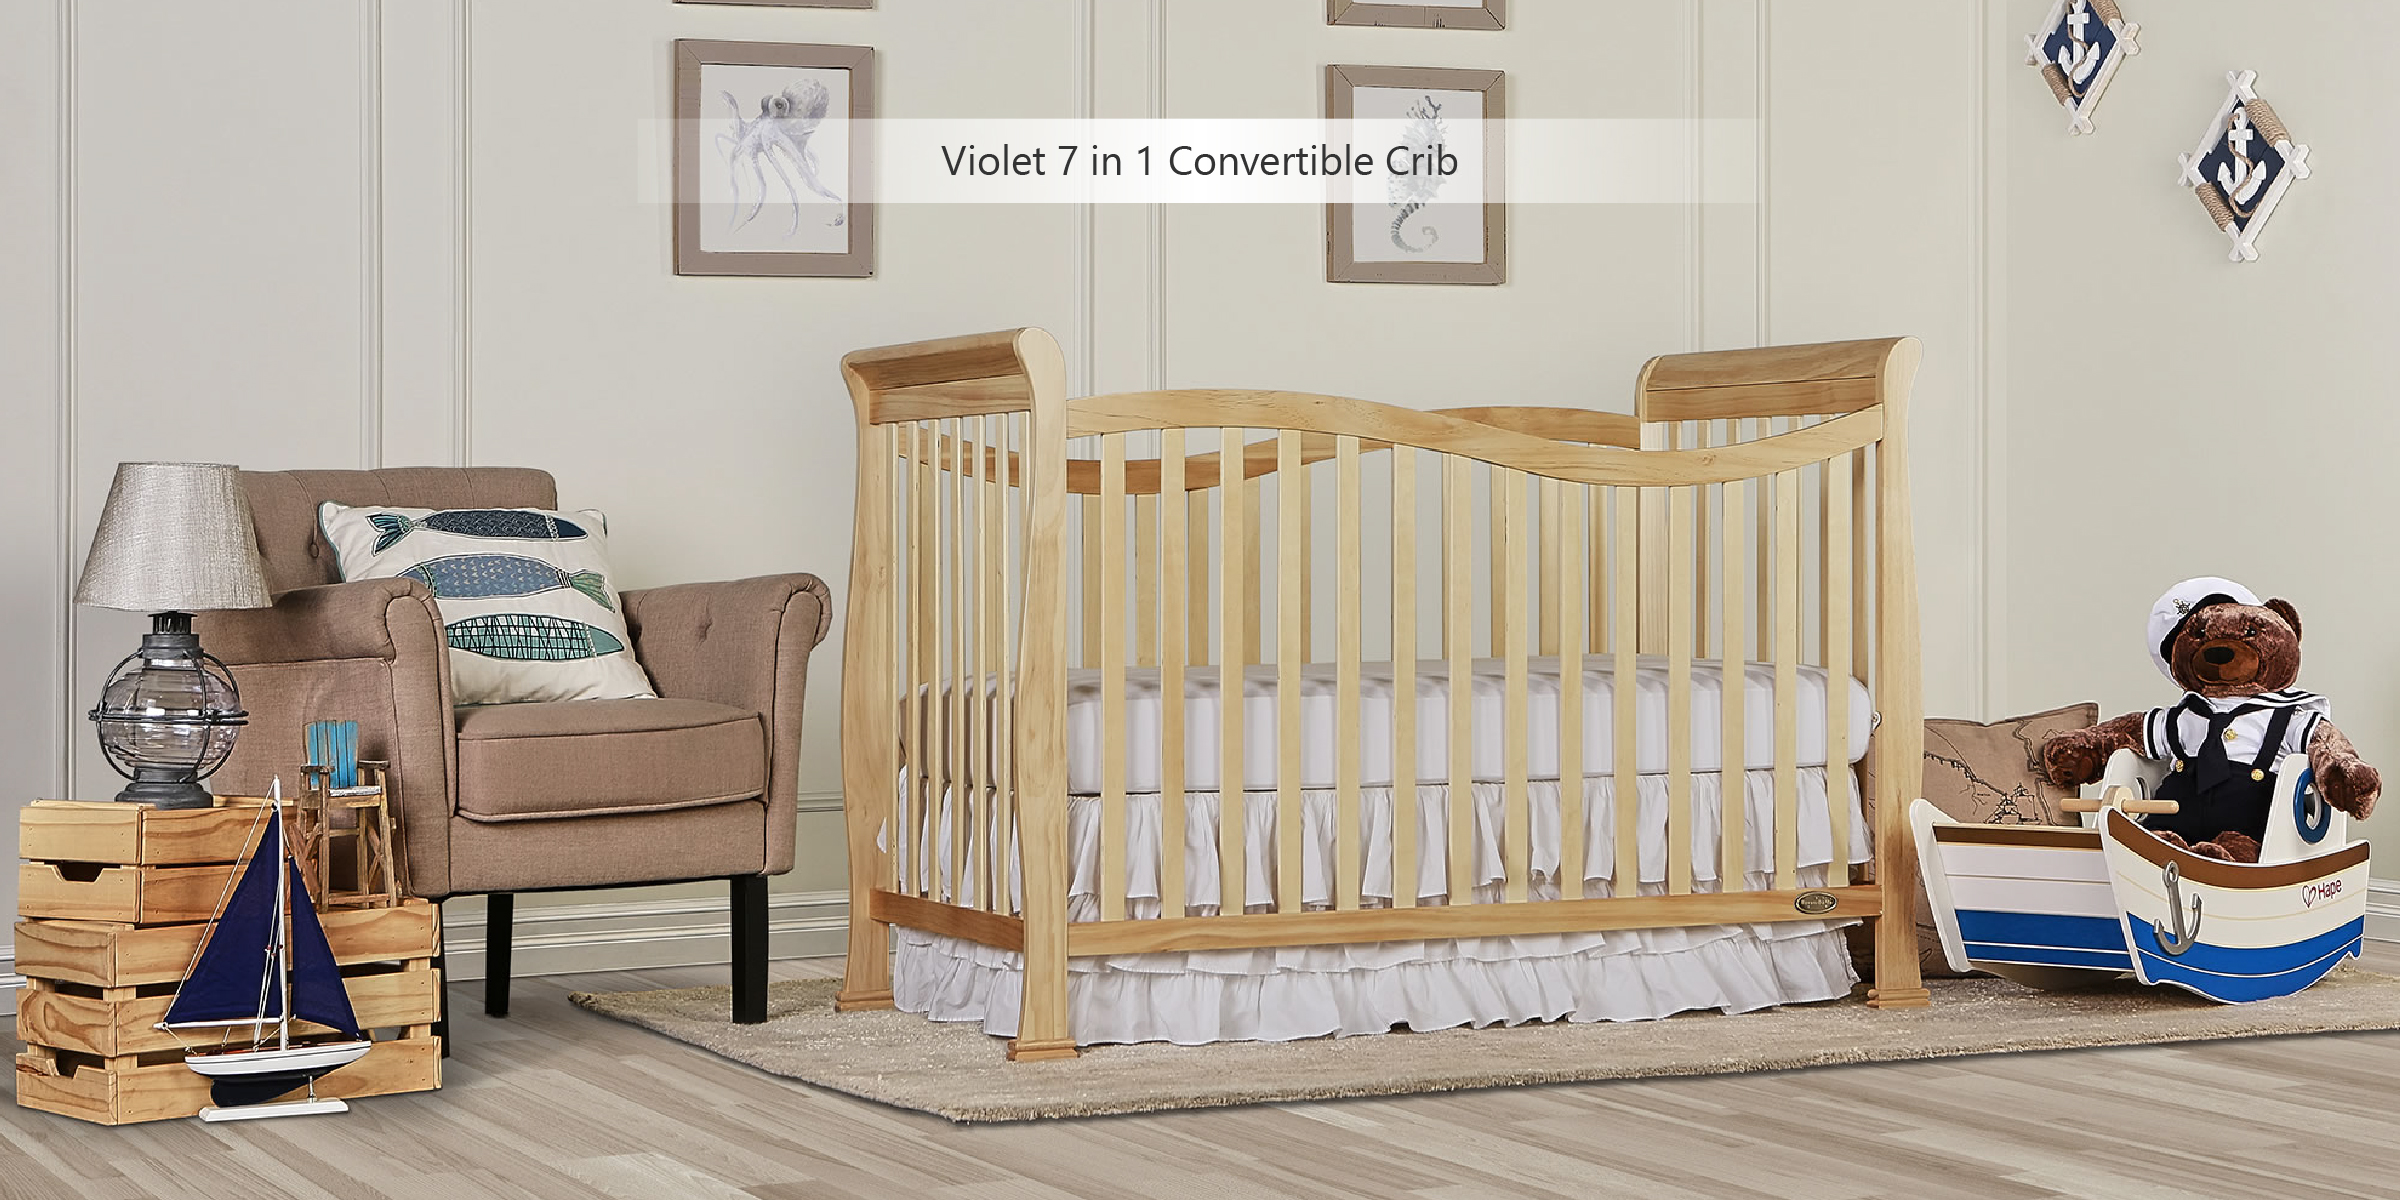 Violet-7-in-1-Convertible-Life-Style-Crib